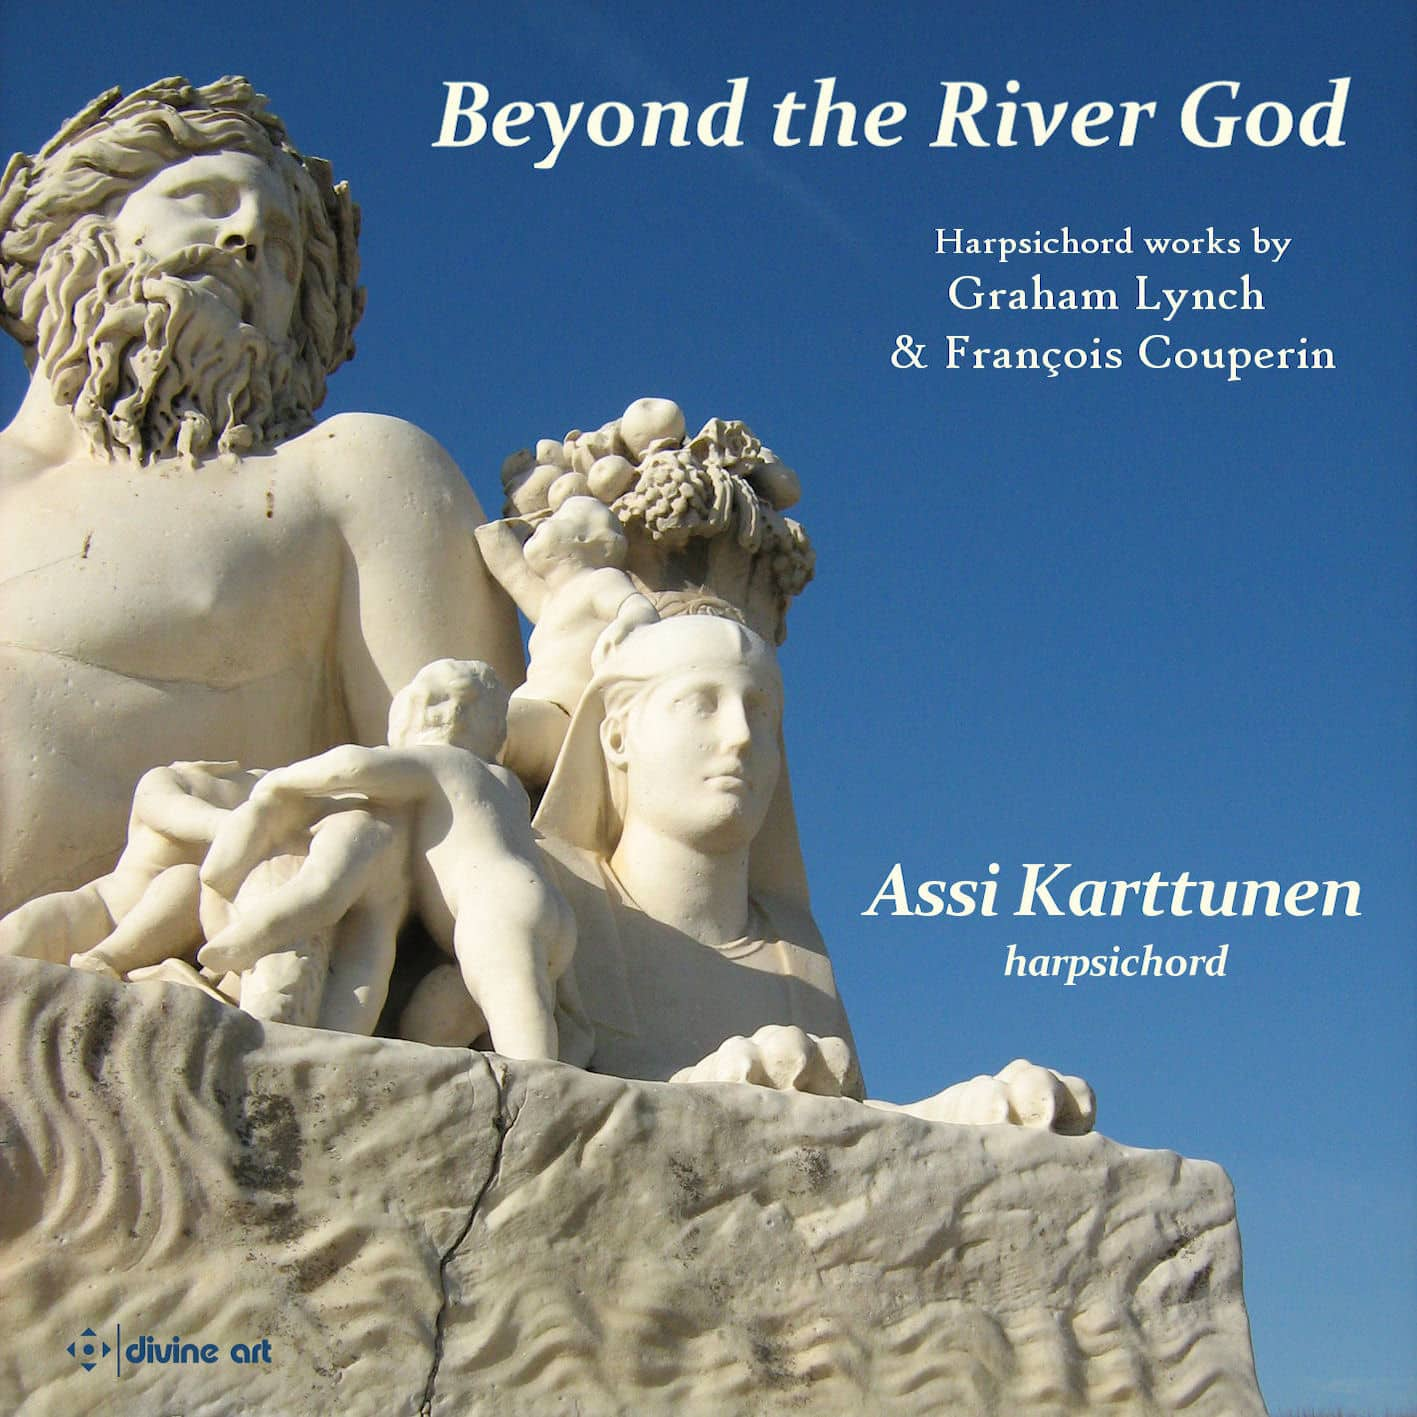 Beyond the River God: music for harpsichord